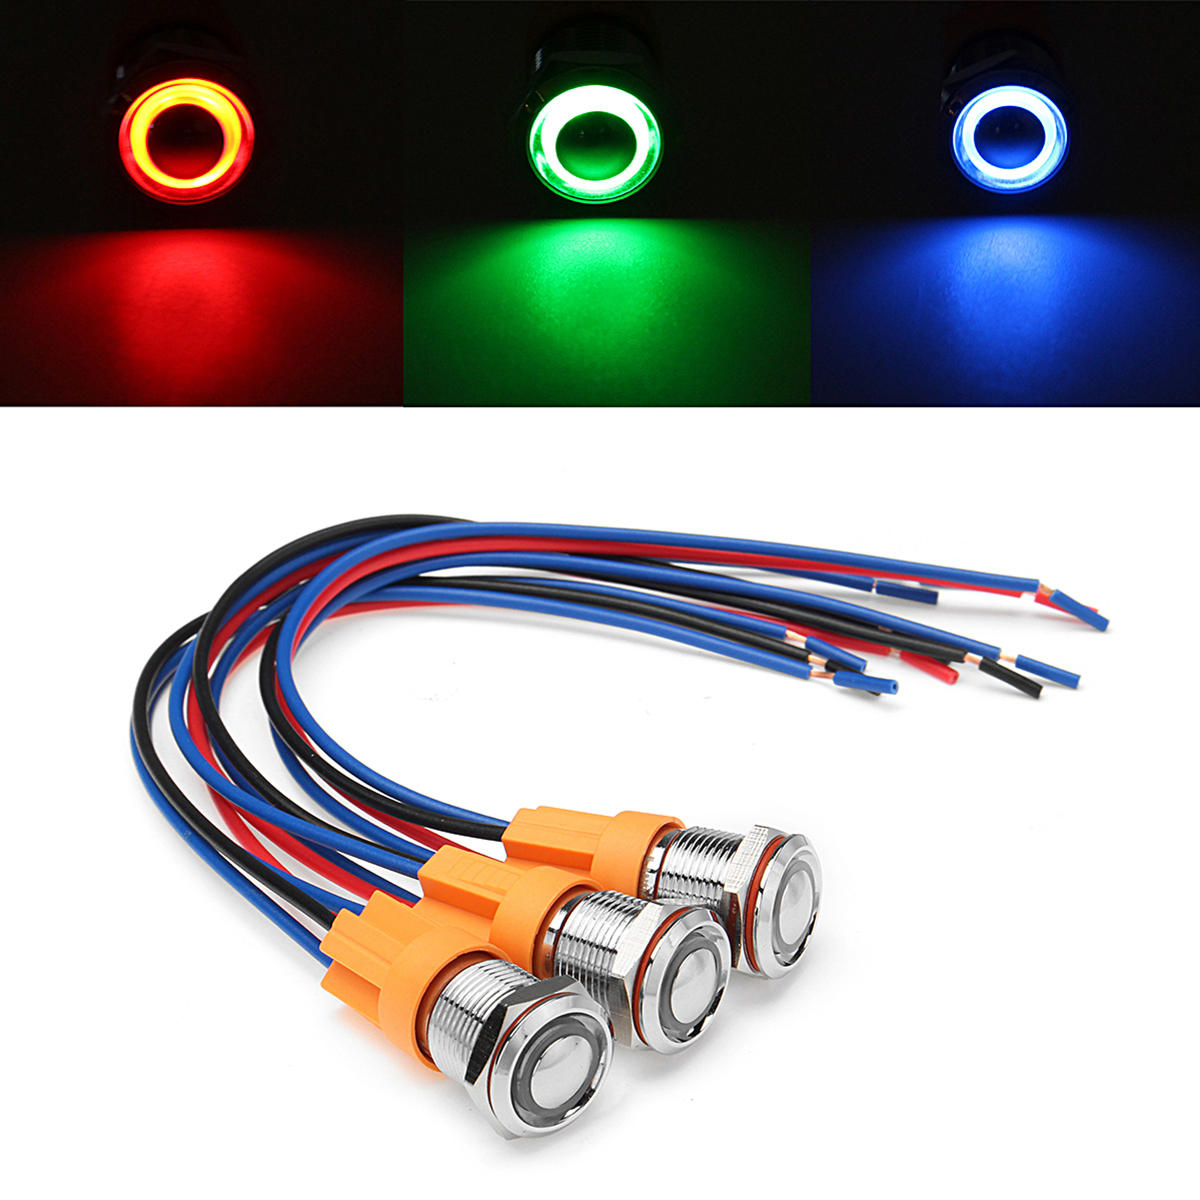 12v-24v 4pin 12mm metal on/off led push button switch wiring harness switch  self-locking waterproof - blue cod